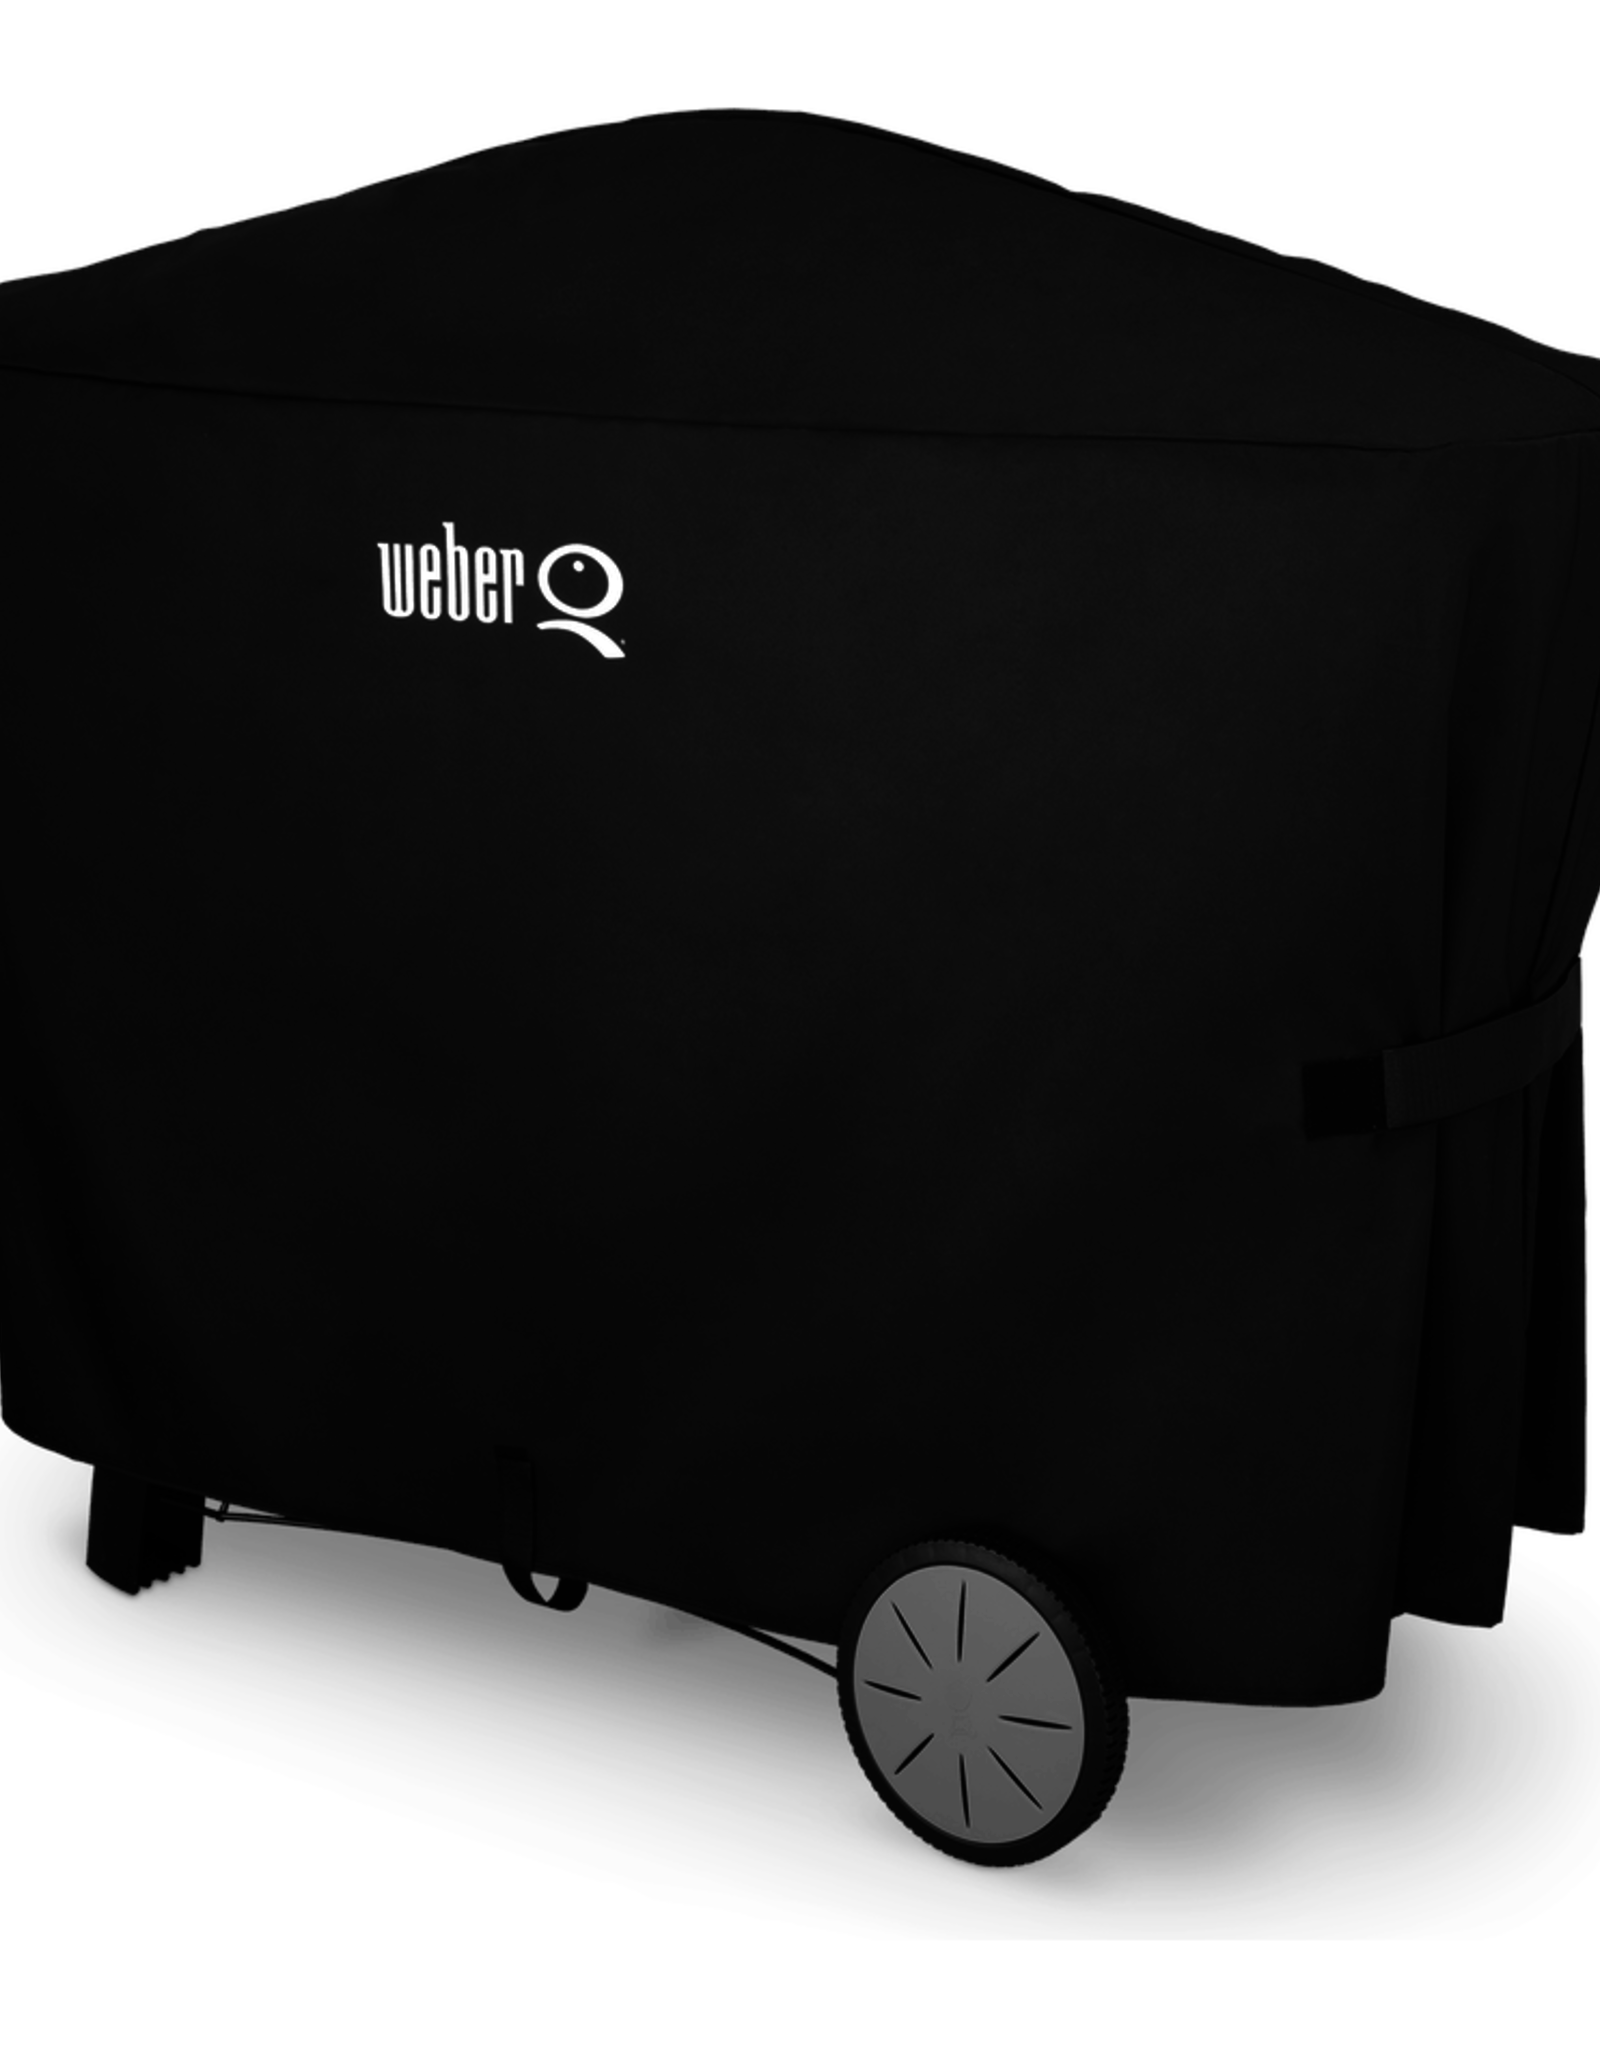 Weber Premium Grill Cover - Fits Weber Q® 2000 series grills with Q cart and 3000 series